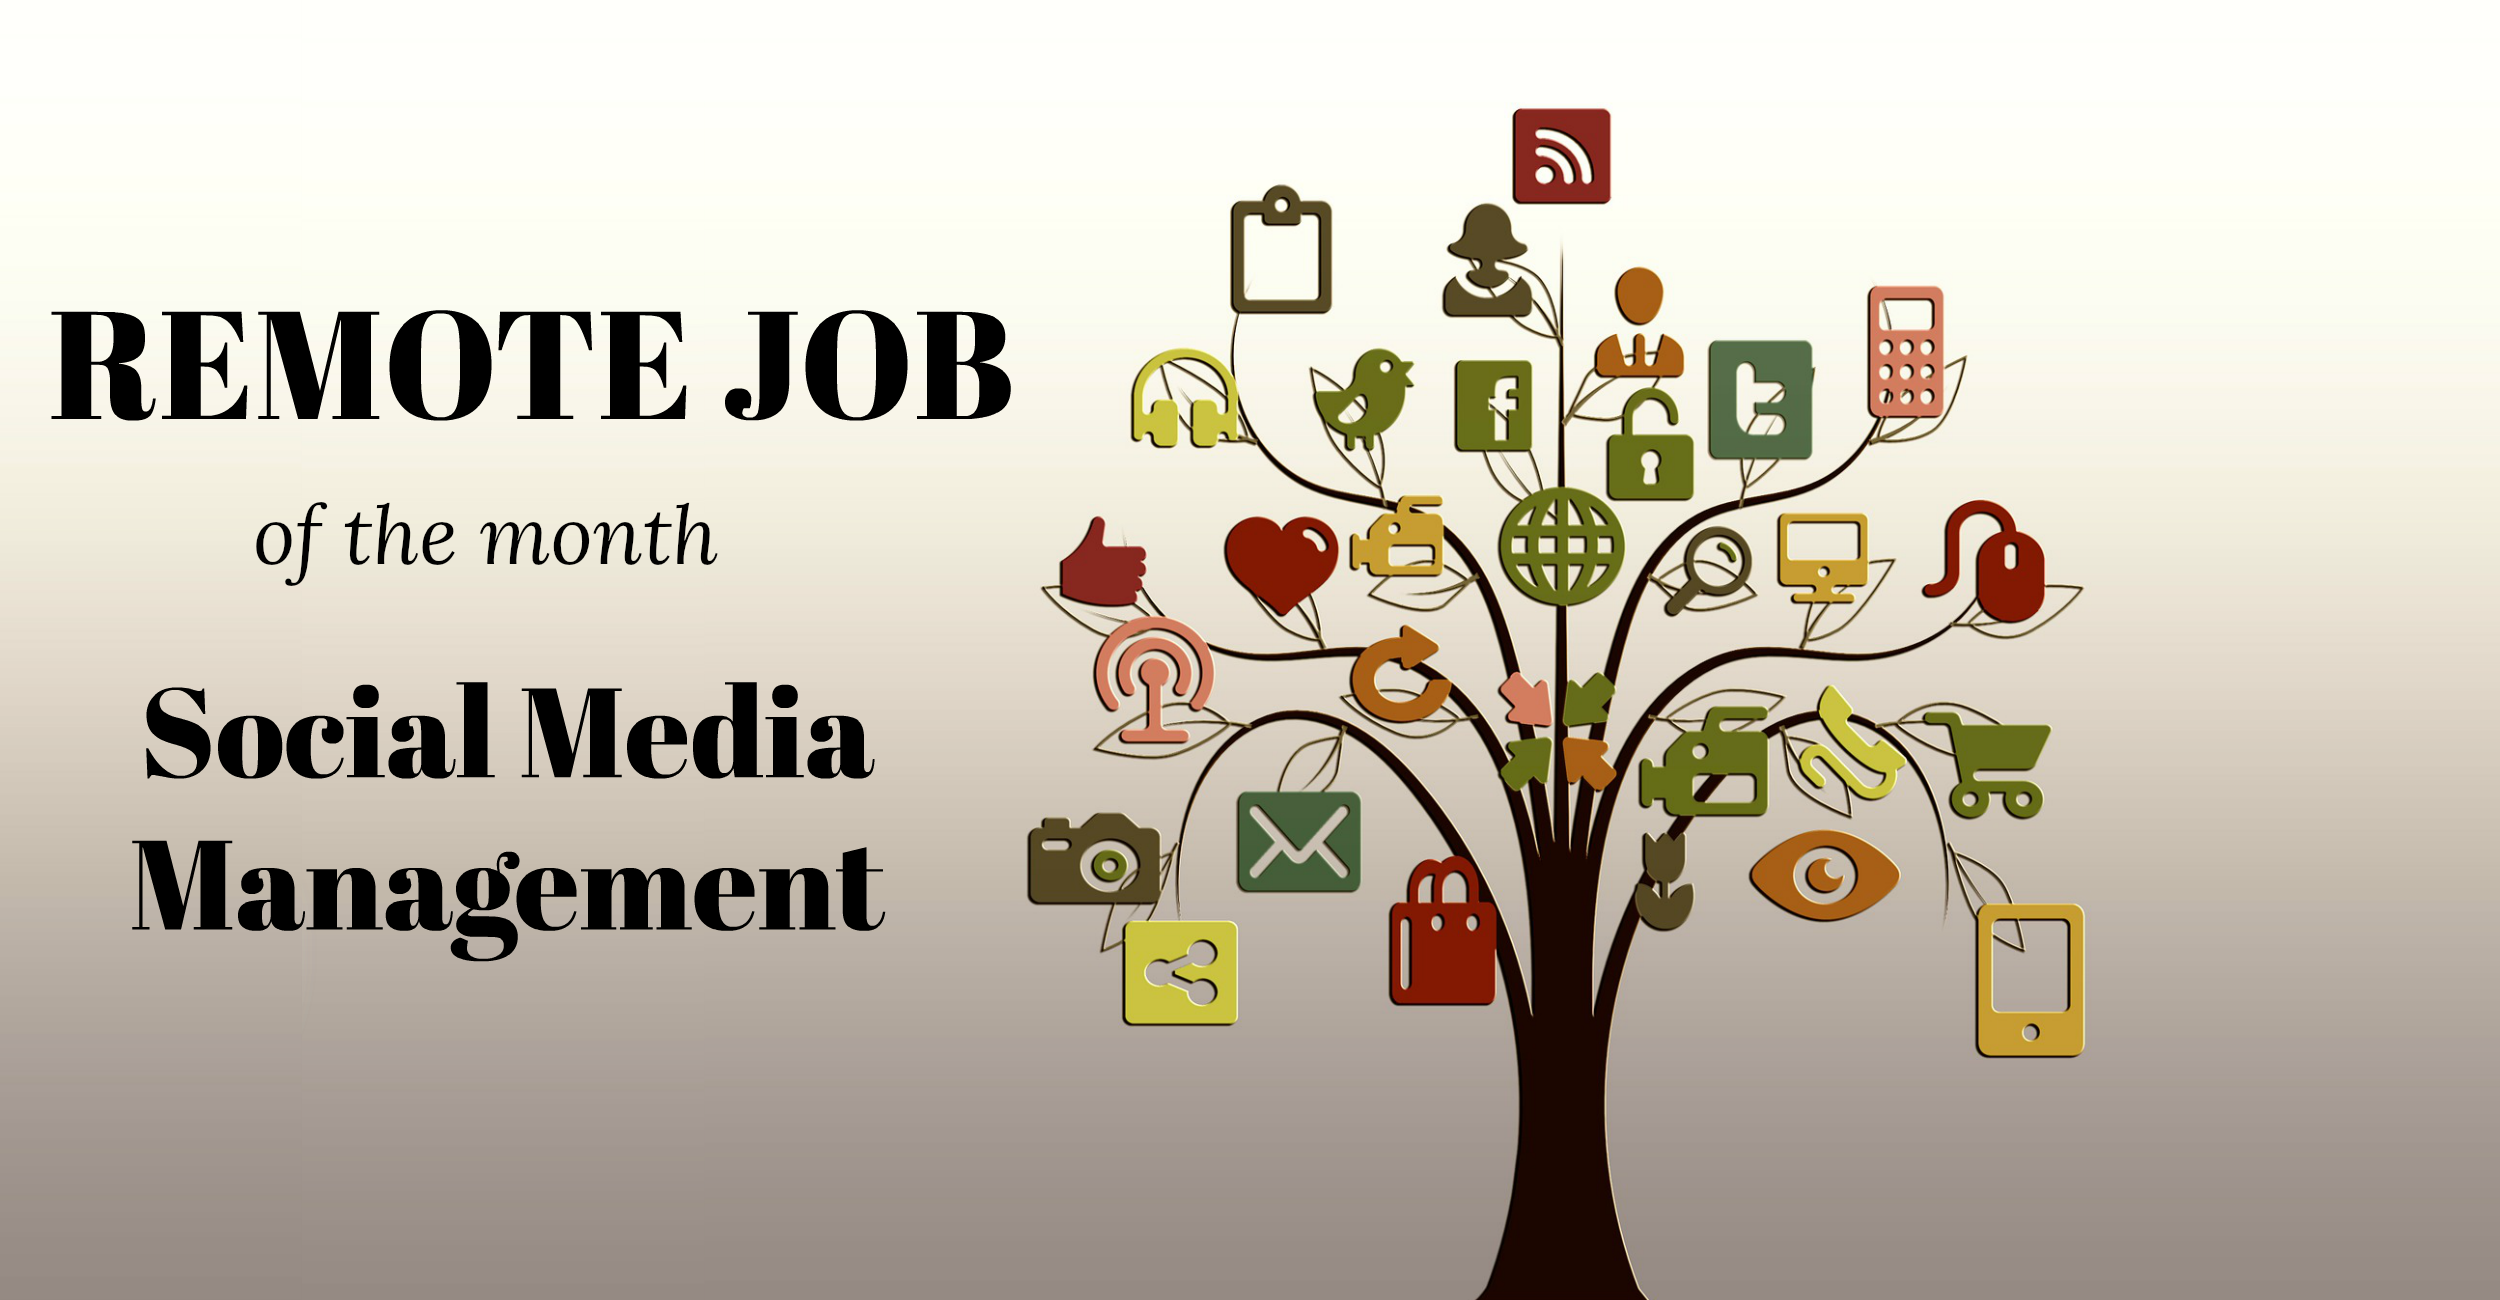 Remote Job of the Month, Social Media Management